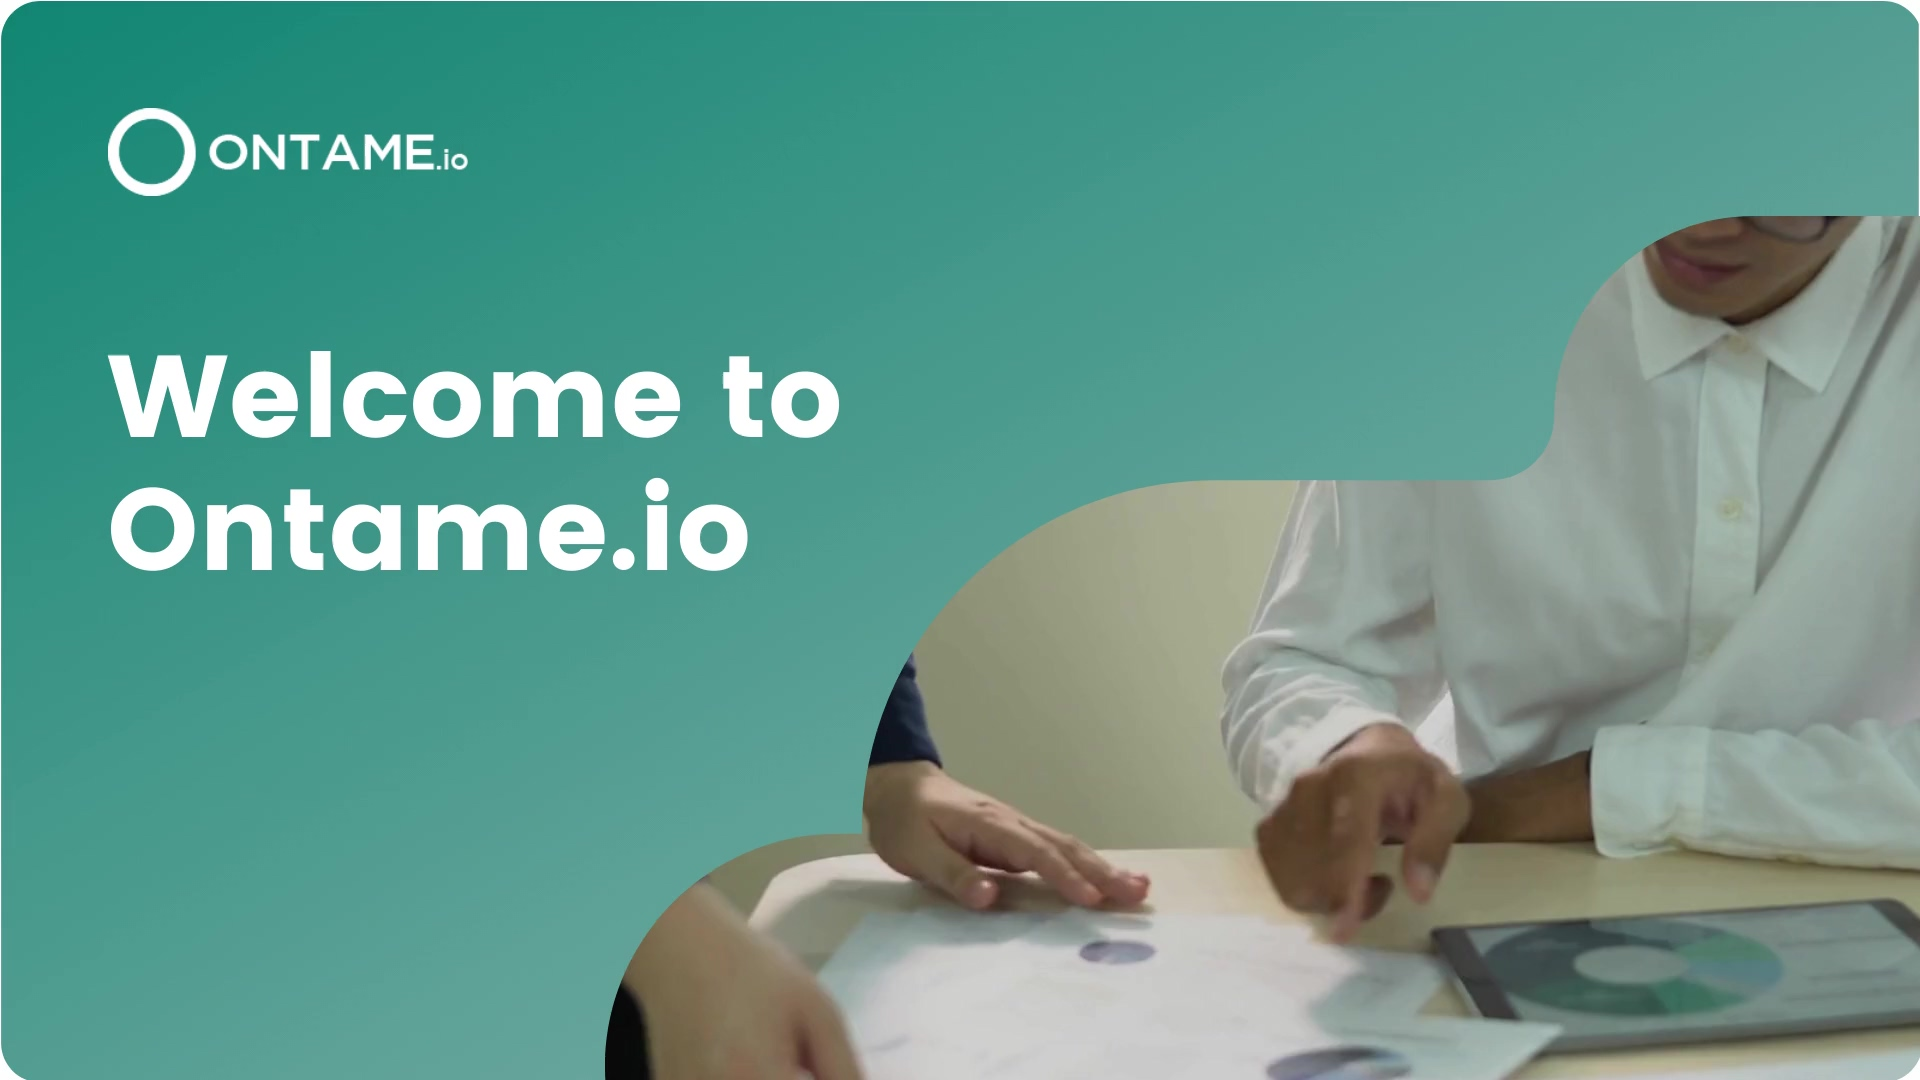 Welcome to Ontame